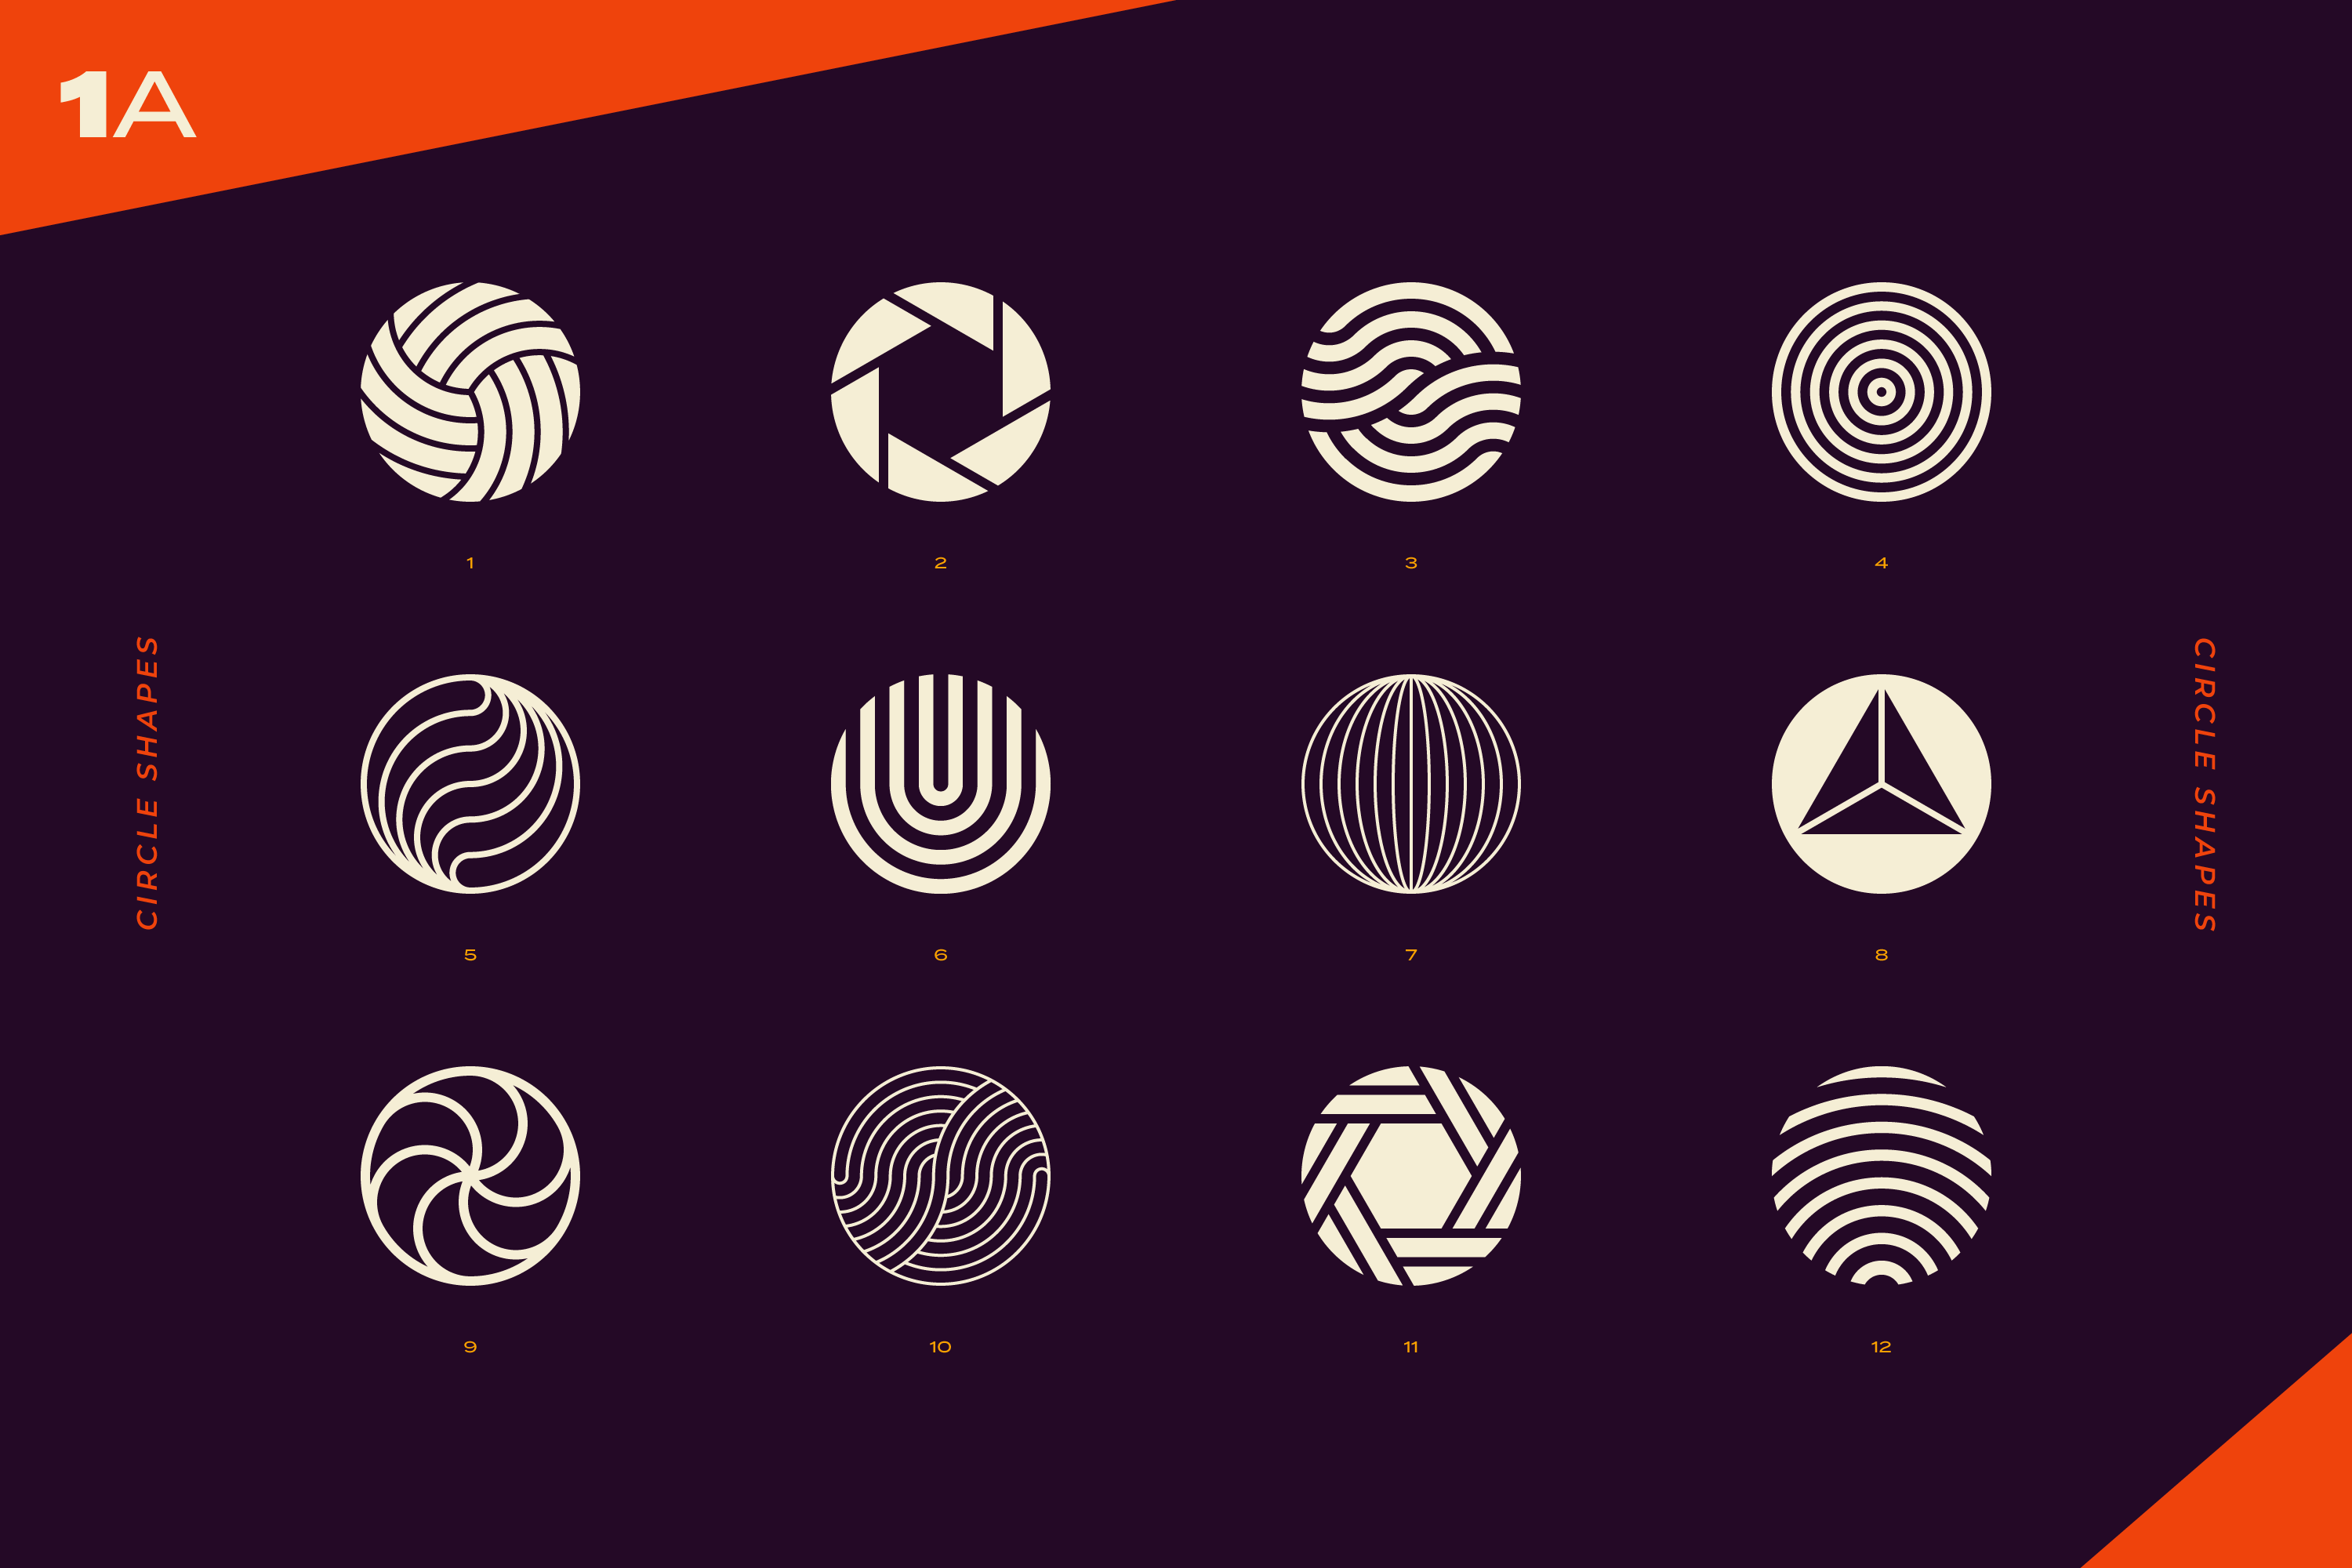 96 Abstract logo marks & geometric shapes collection example image 3